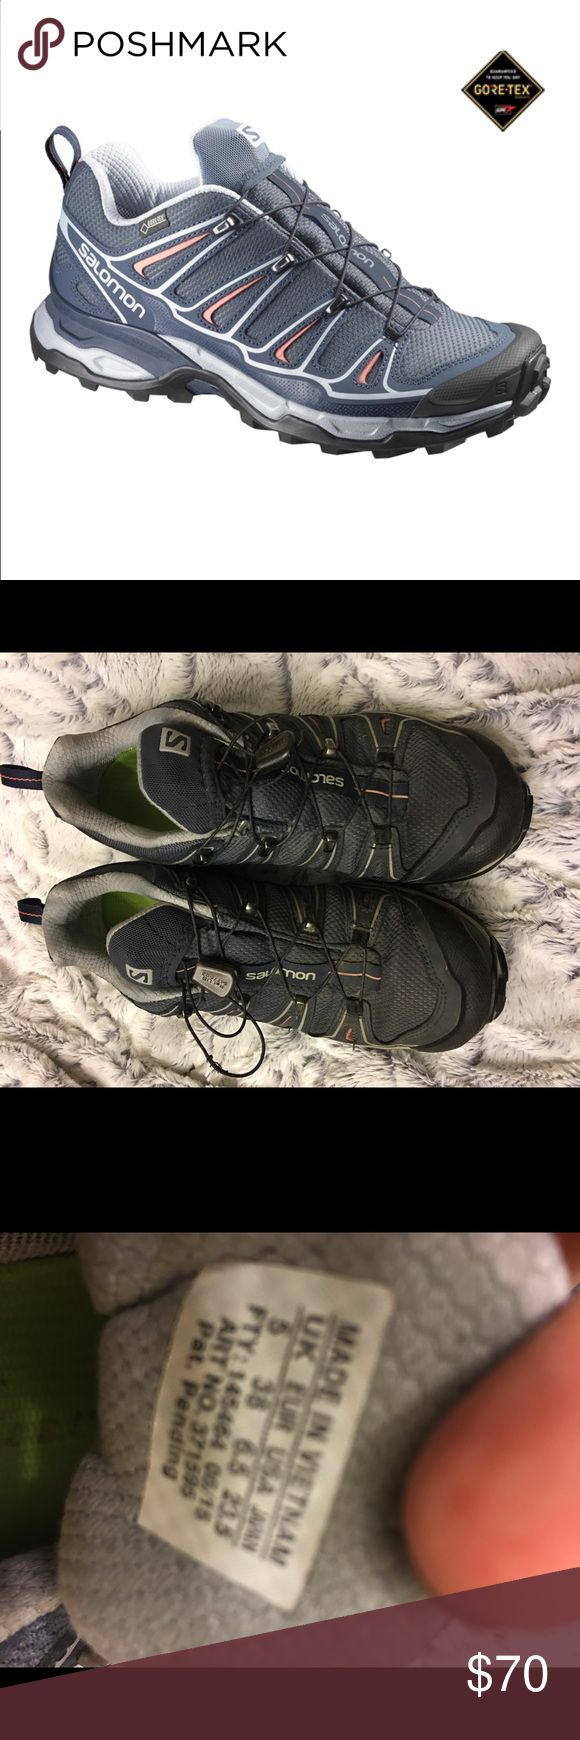 Salomon x ultra Gtx women's shoes Salomon X Ultra 2 GTX W hiking shoe, perfect for the outdoors girl. Perfect condition like new! Salomon Shoes Athletic Shoes